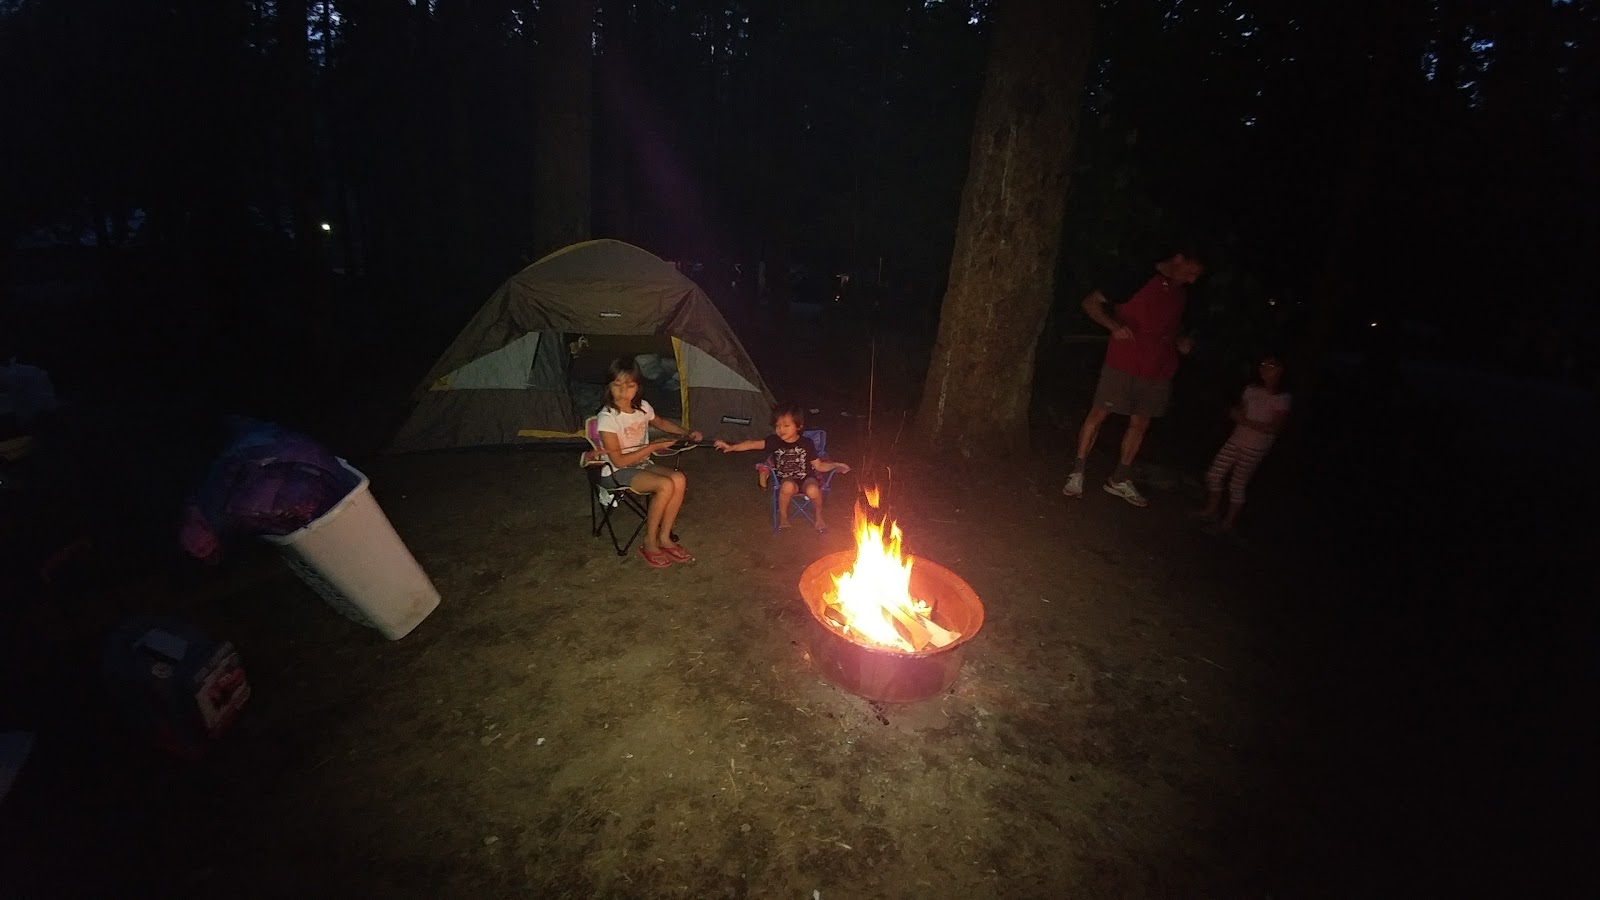 My family and I are highly recommended this camping site for anyone who wants to go camping with their family.